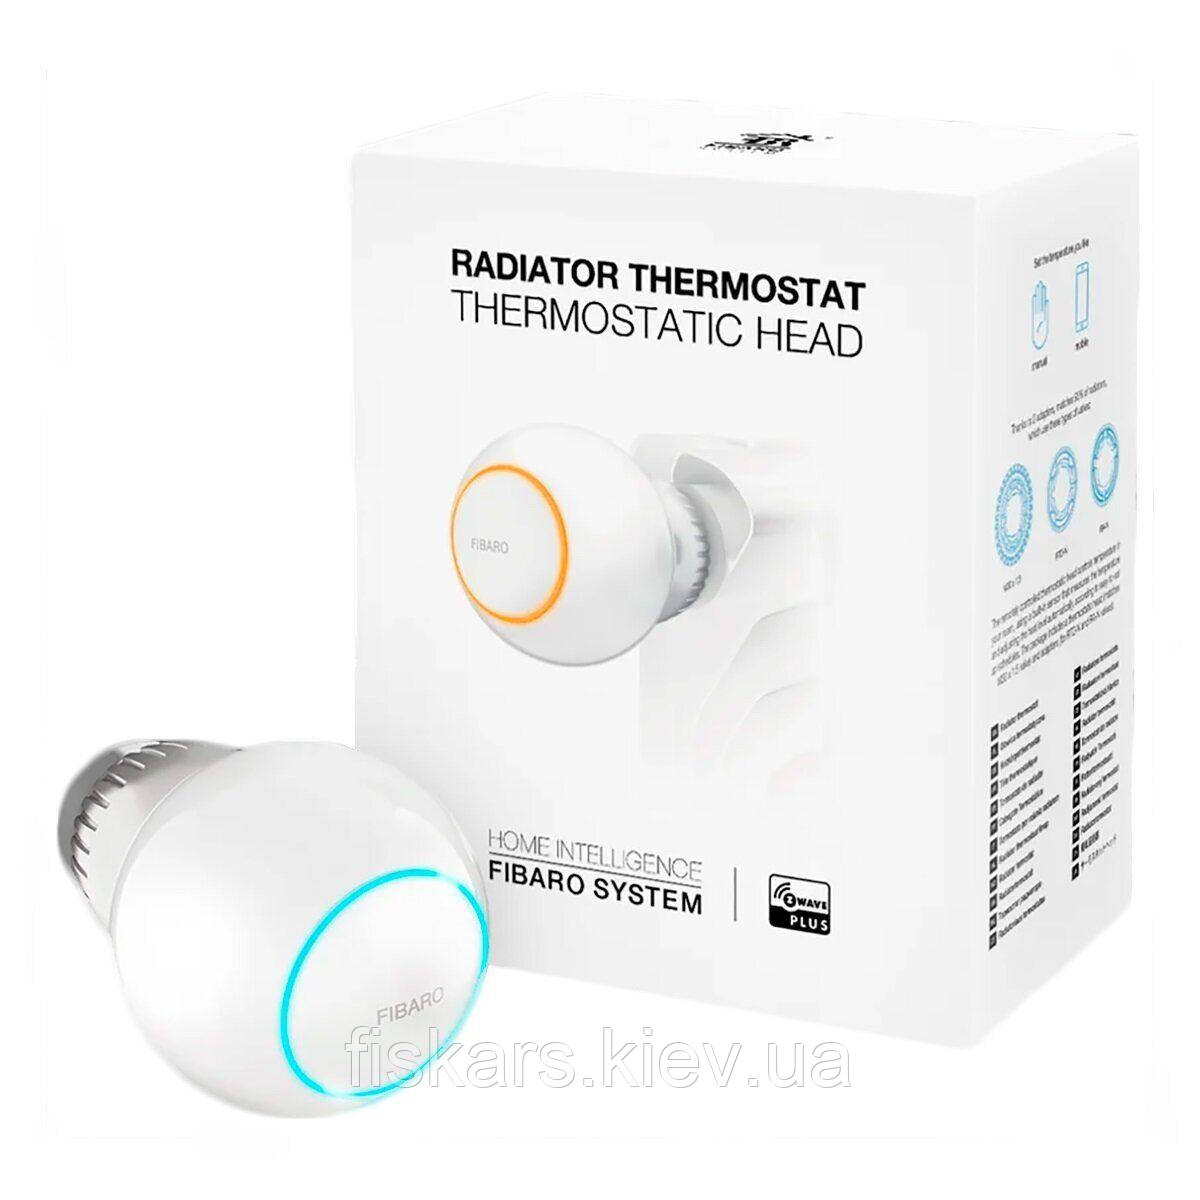 Радиаторный термостат Fibaro Heat Controller Thermostat Head - FIBEFGT-001